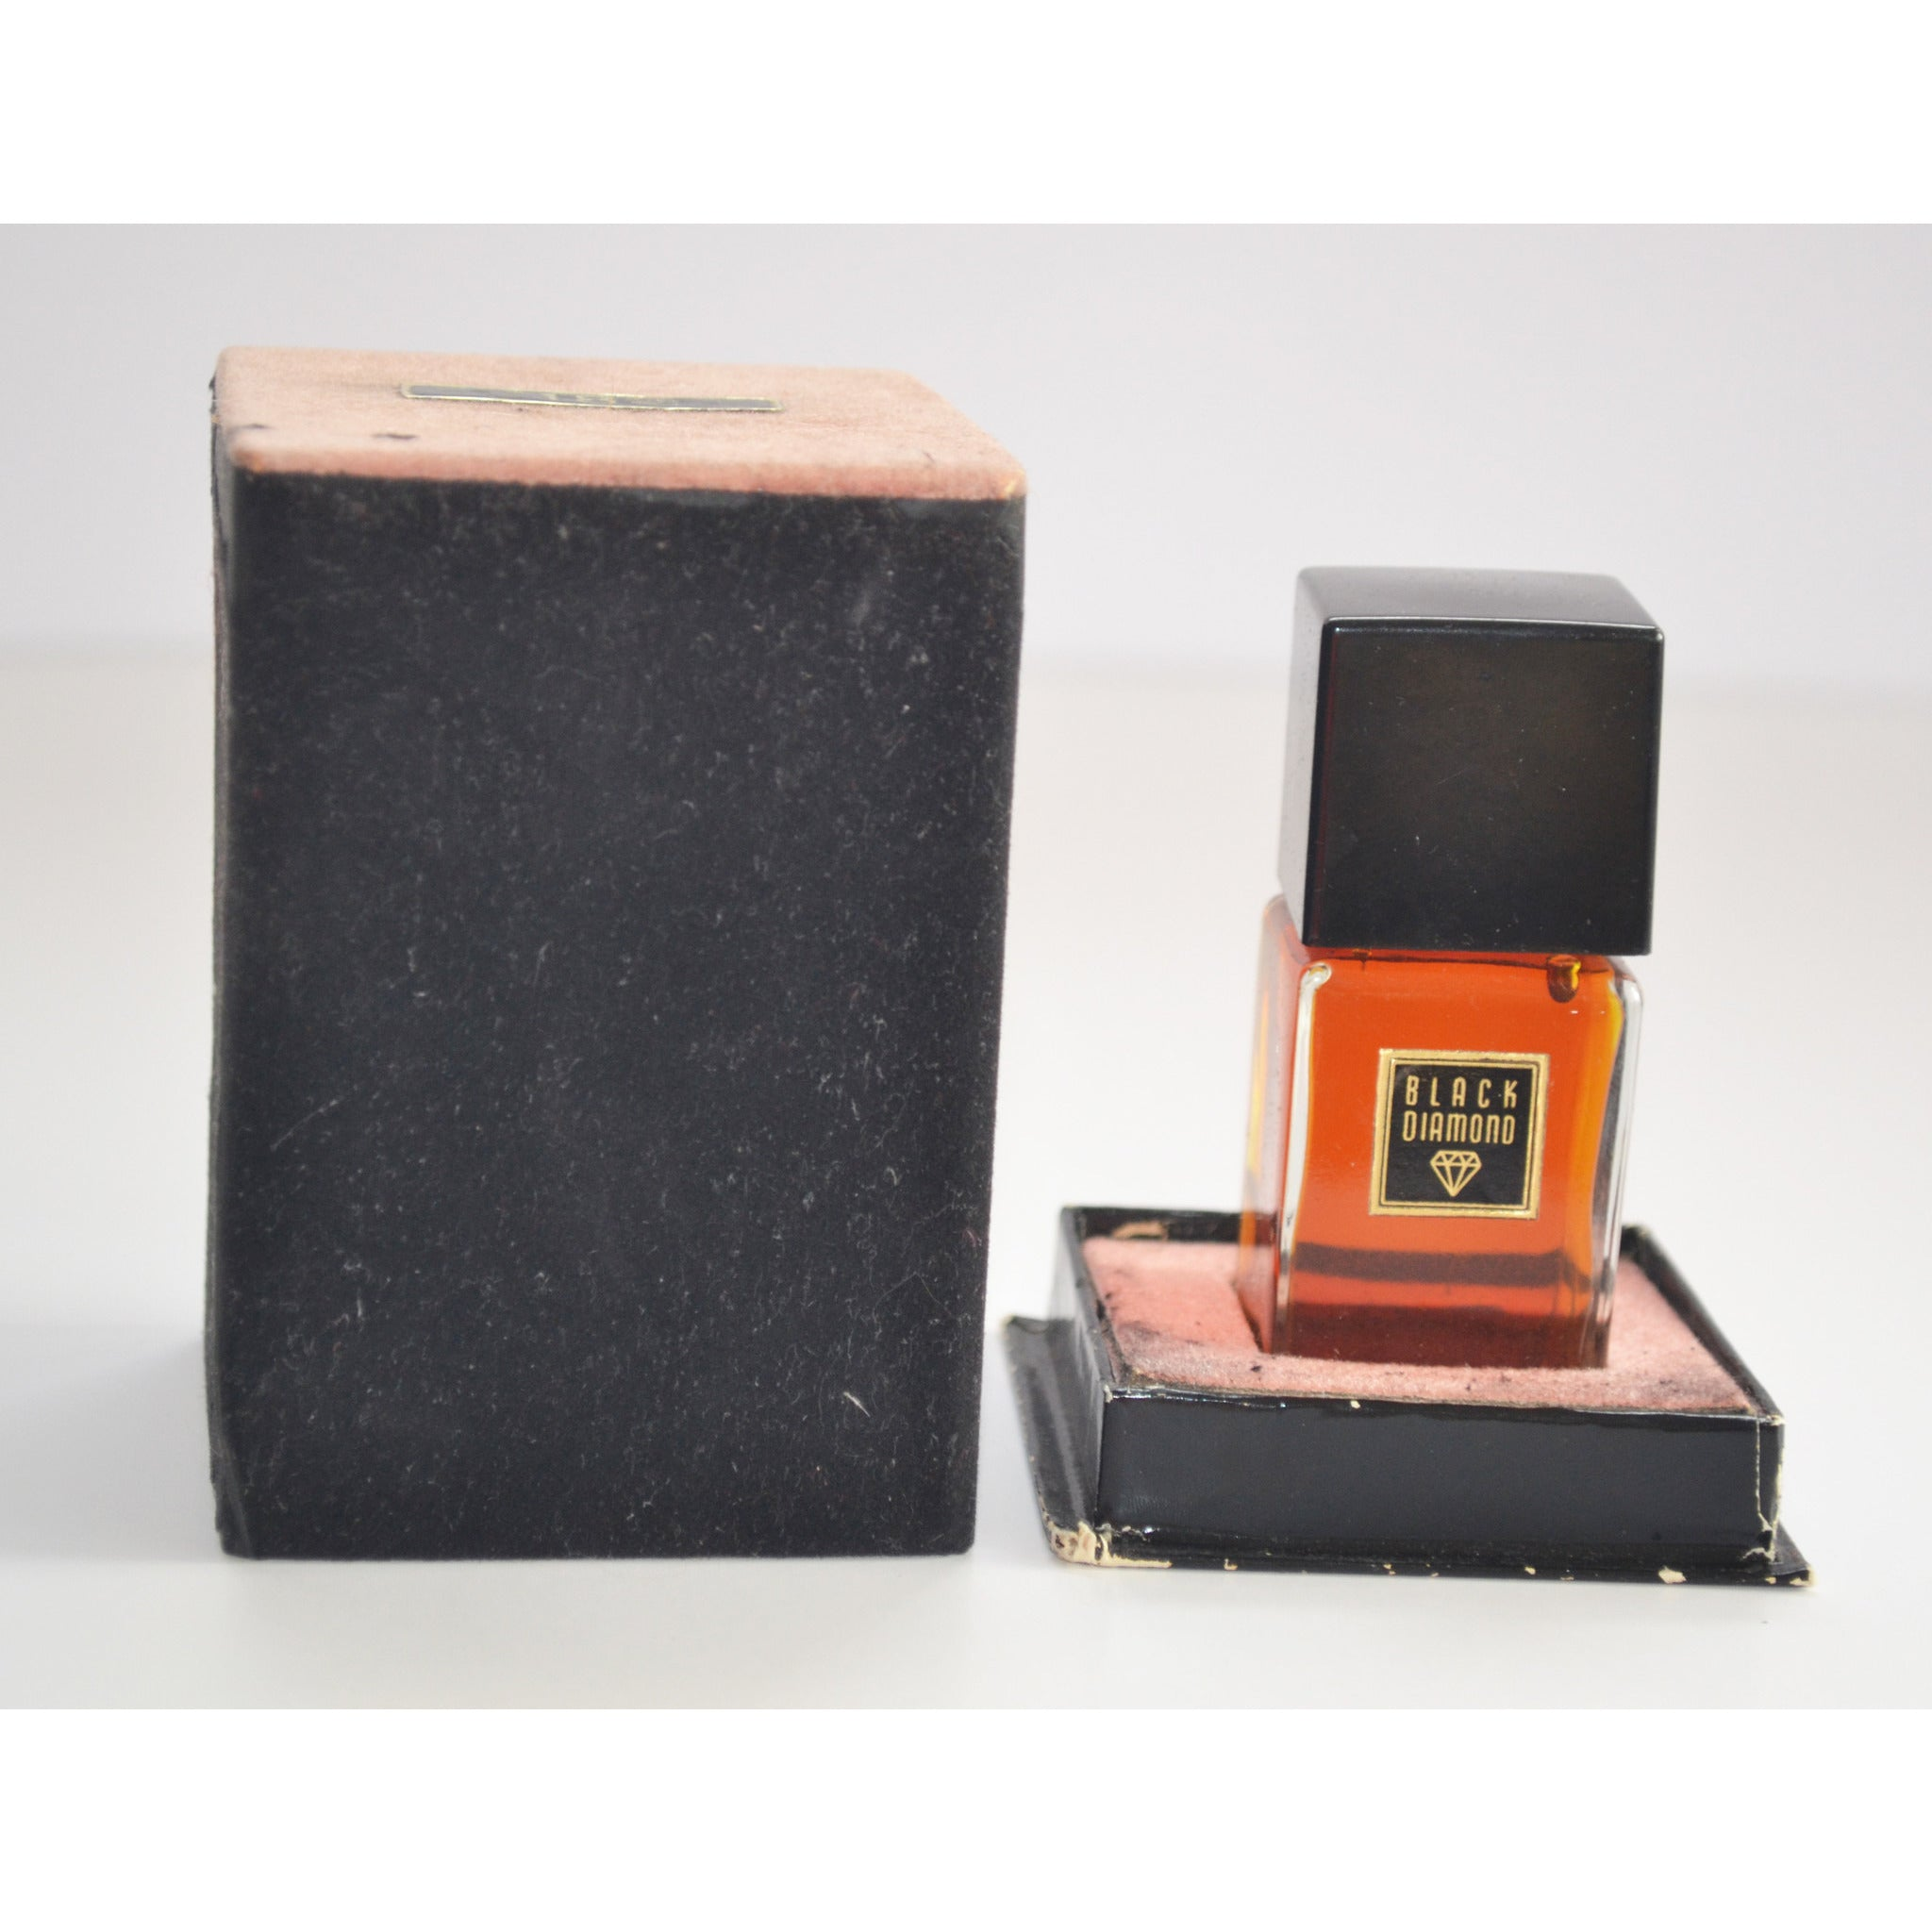 Vintage Black Diamond Perfume